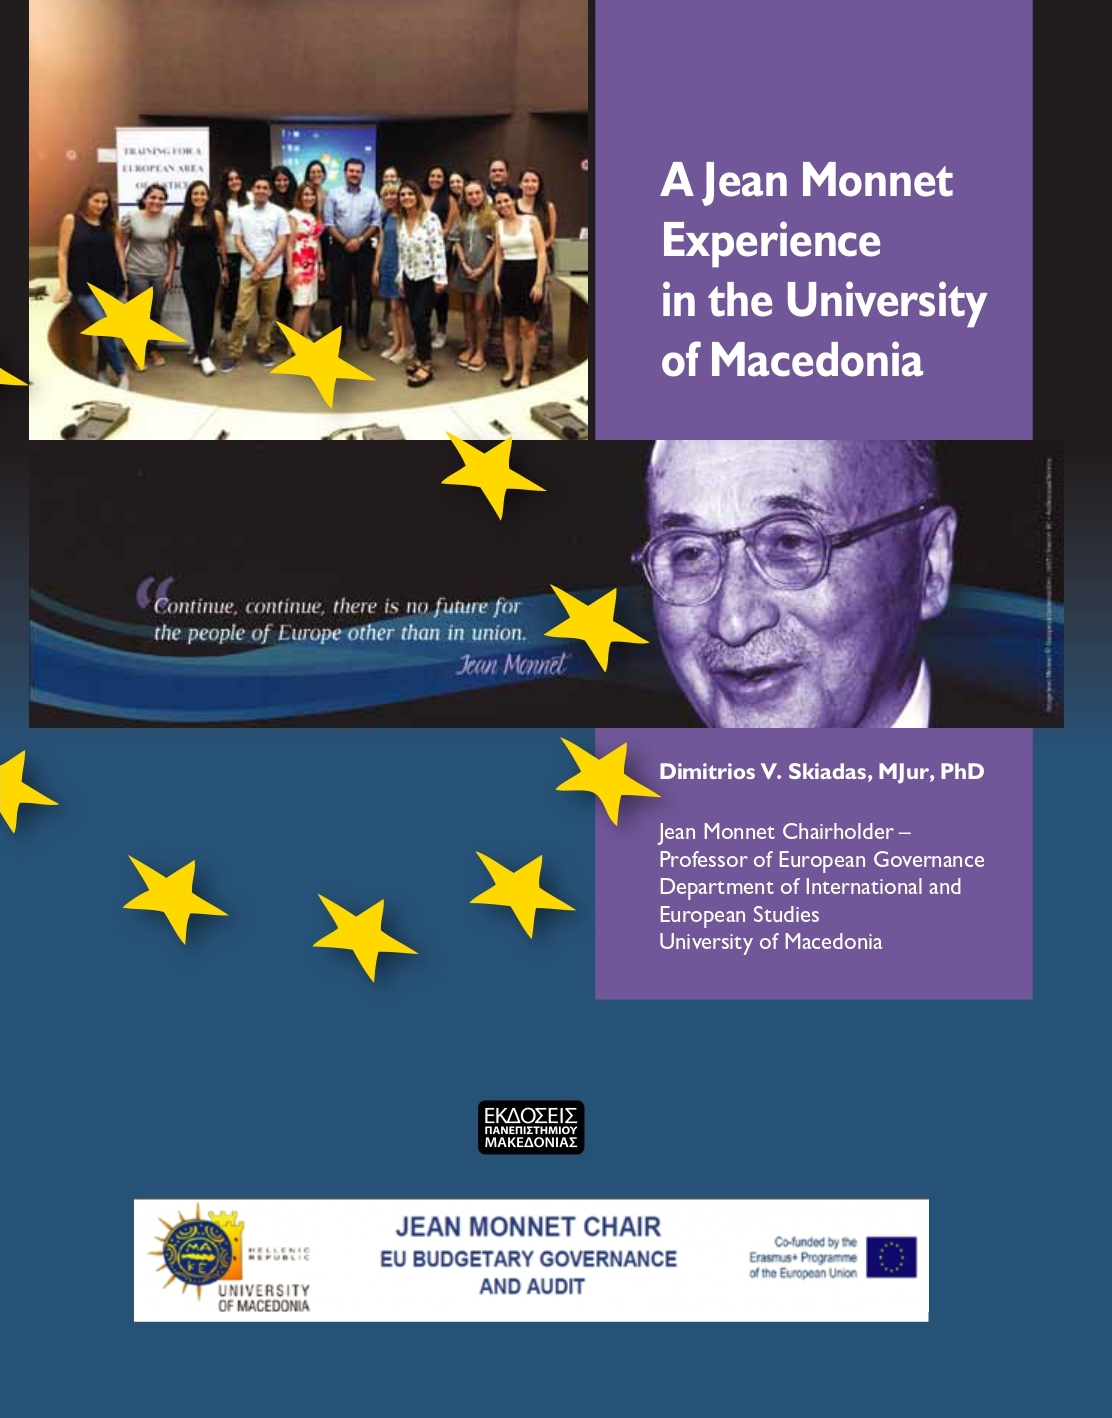 cover_jean monnet experience (2)_page-0001